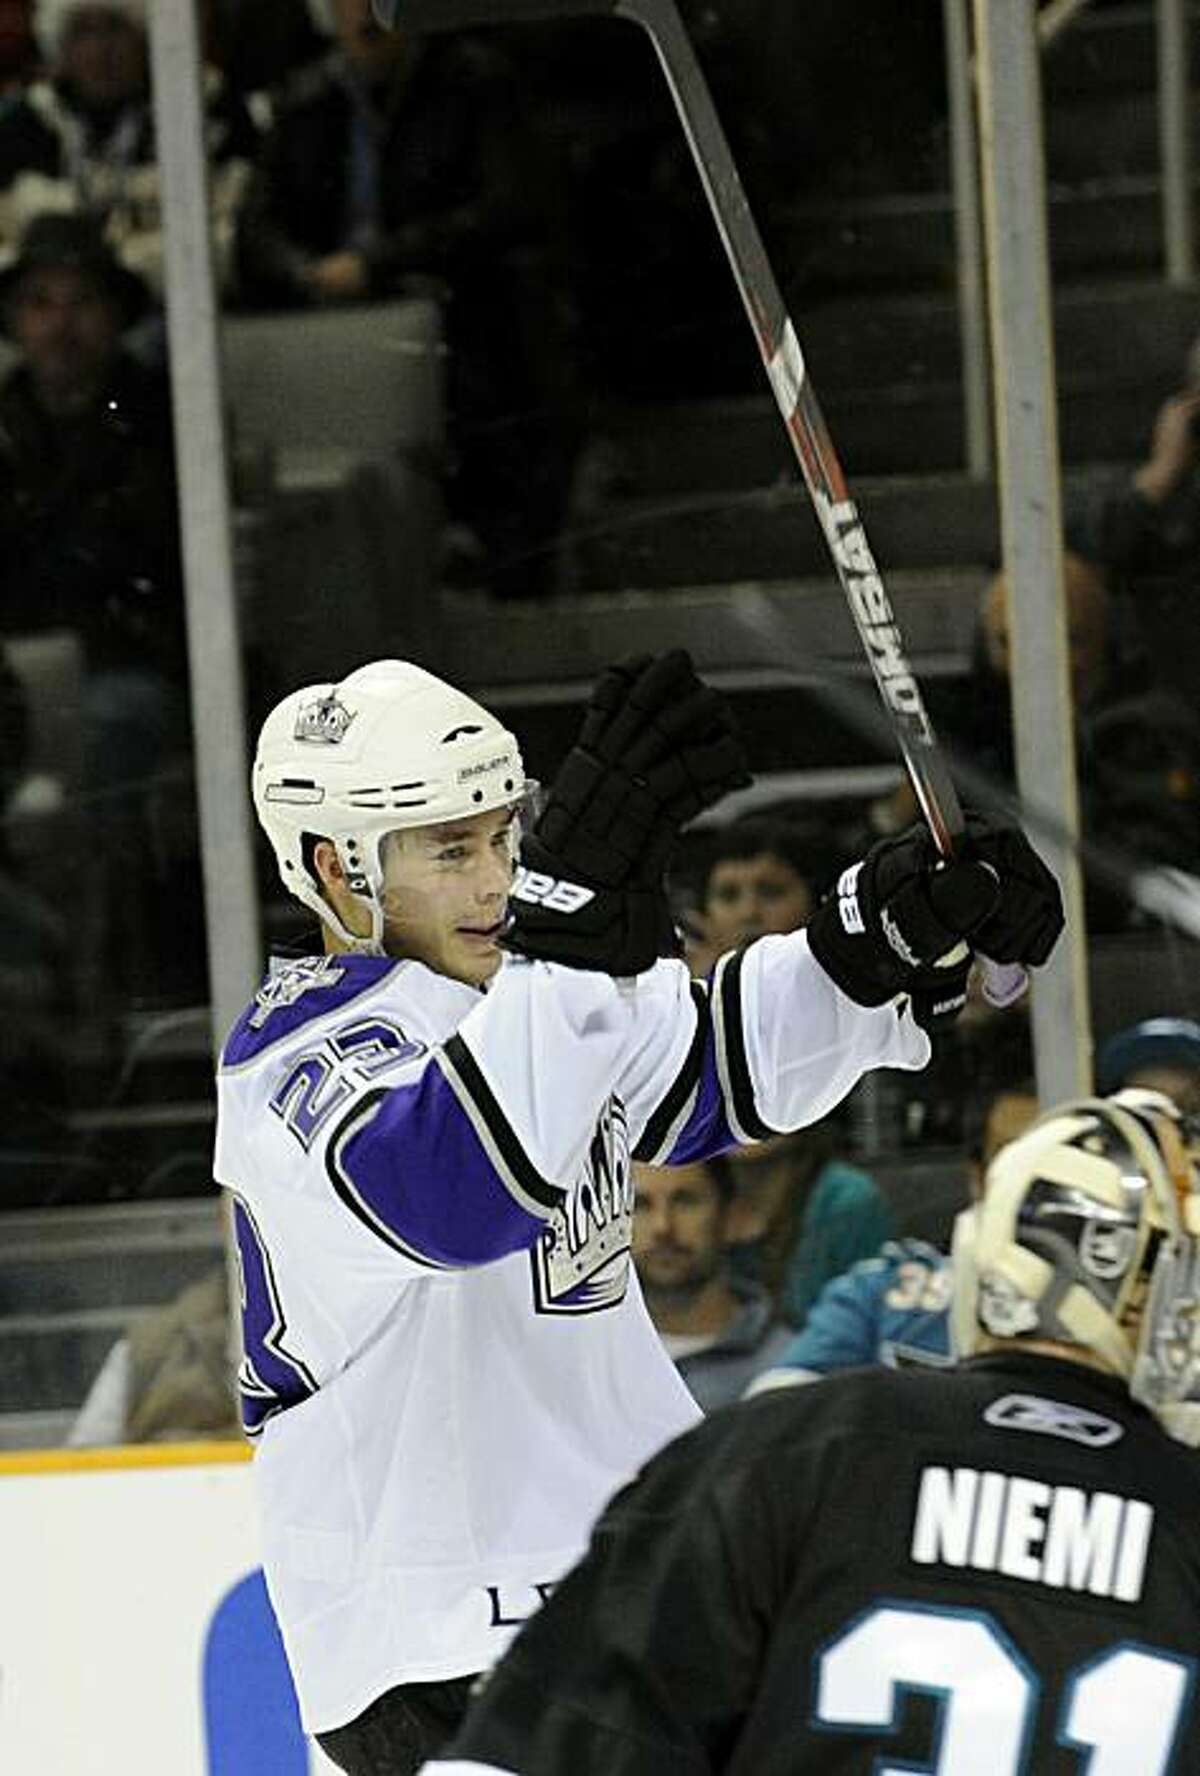 SAN JOSE, CA - DECEMBER 27: Dustin Brown #23 of the Los Angeles Kings celebrates after scoring a goal against the San Jose Sharks during an NHL hockey game at the HP Pavilion on December 27, 2010 in San Jose, California. The Kings won the game 4-0.